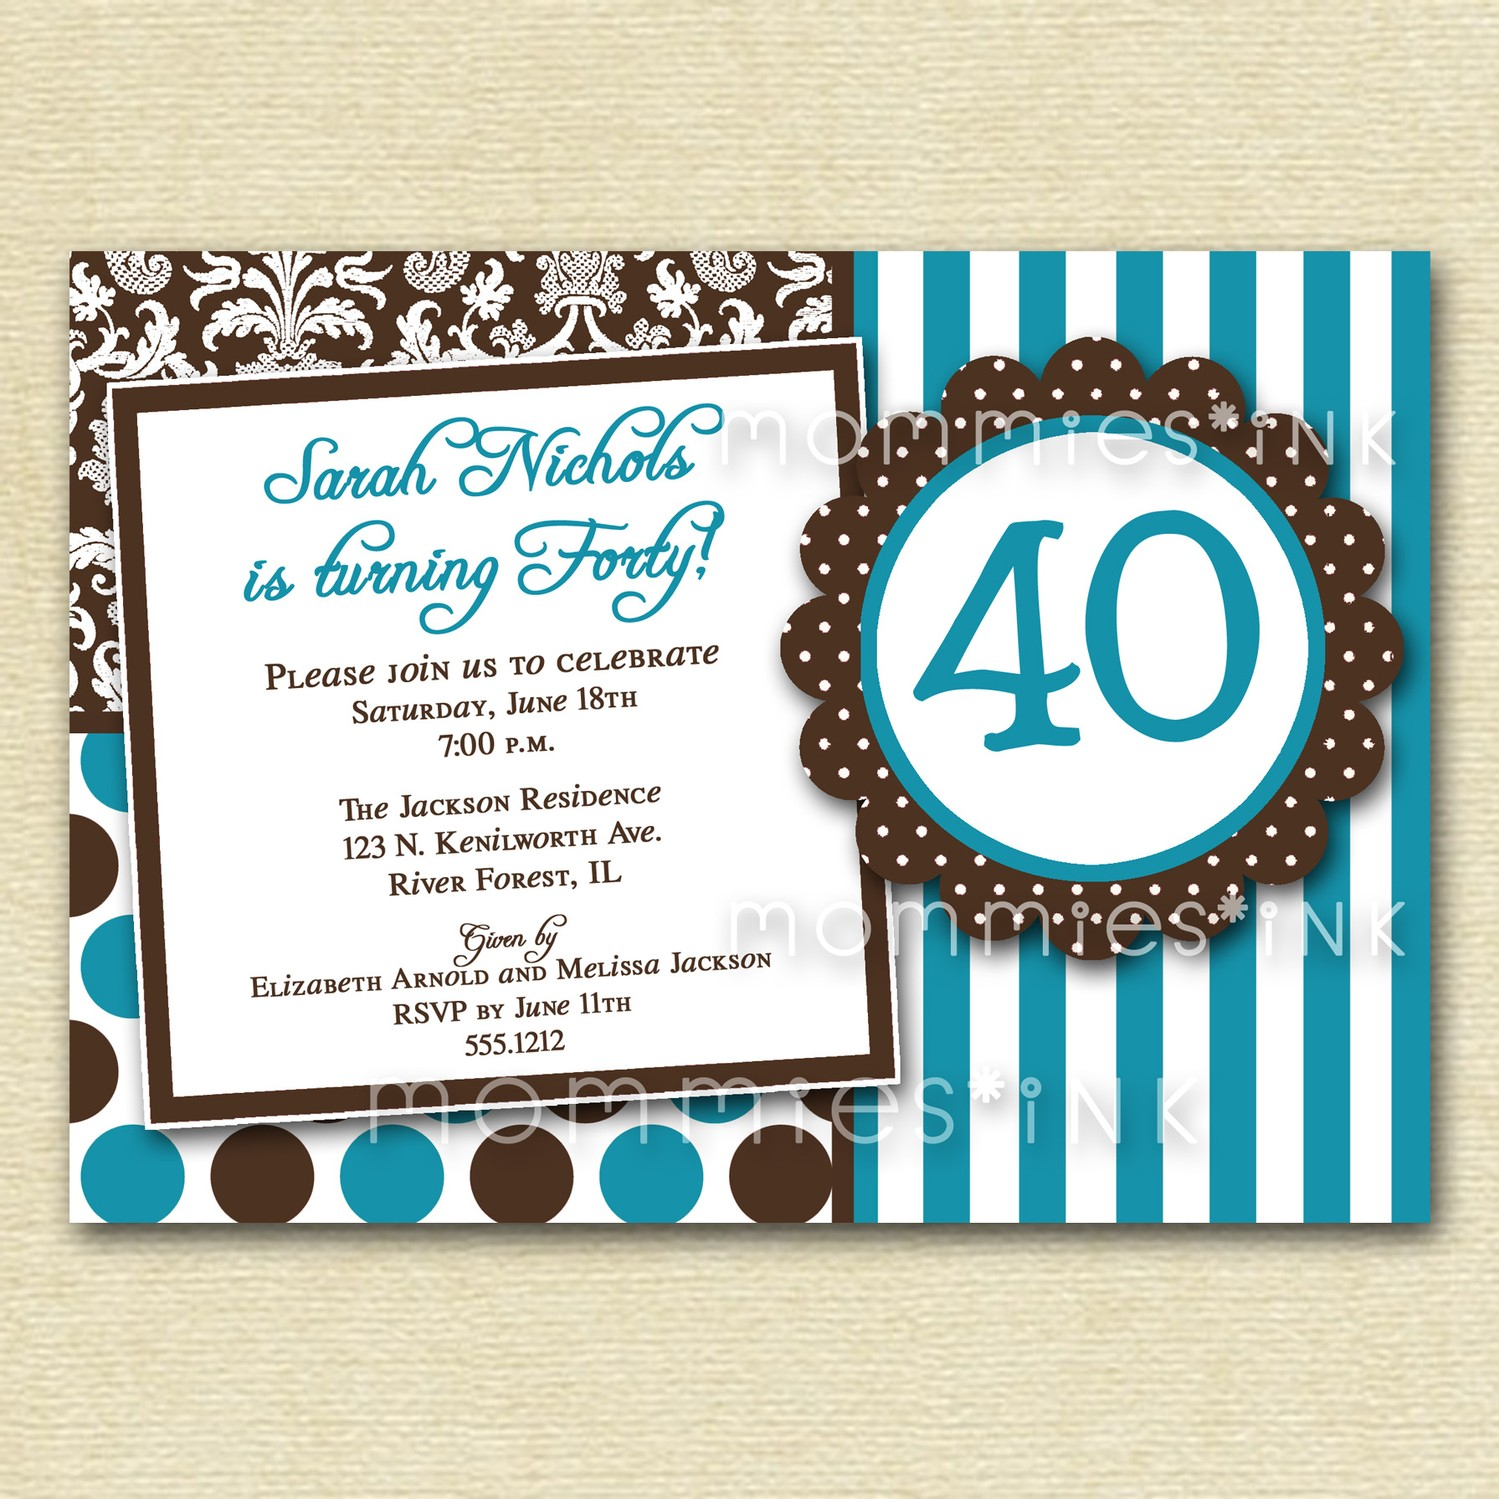 40th birthday invitation cards designs ; 40Th-Birthday-Invitations-For-Her-and-get-ideas-how-to-make-easy-on-the-eye-birthday-Invitation-appearance-1